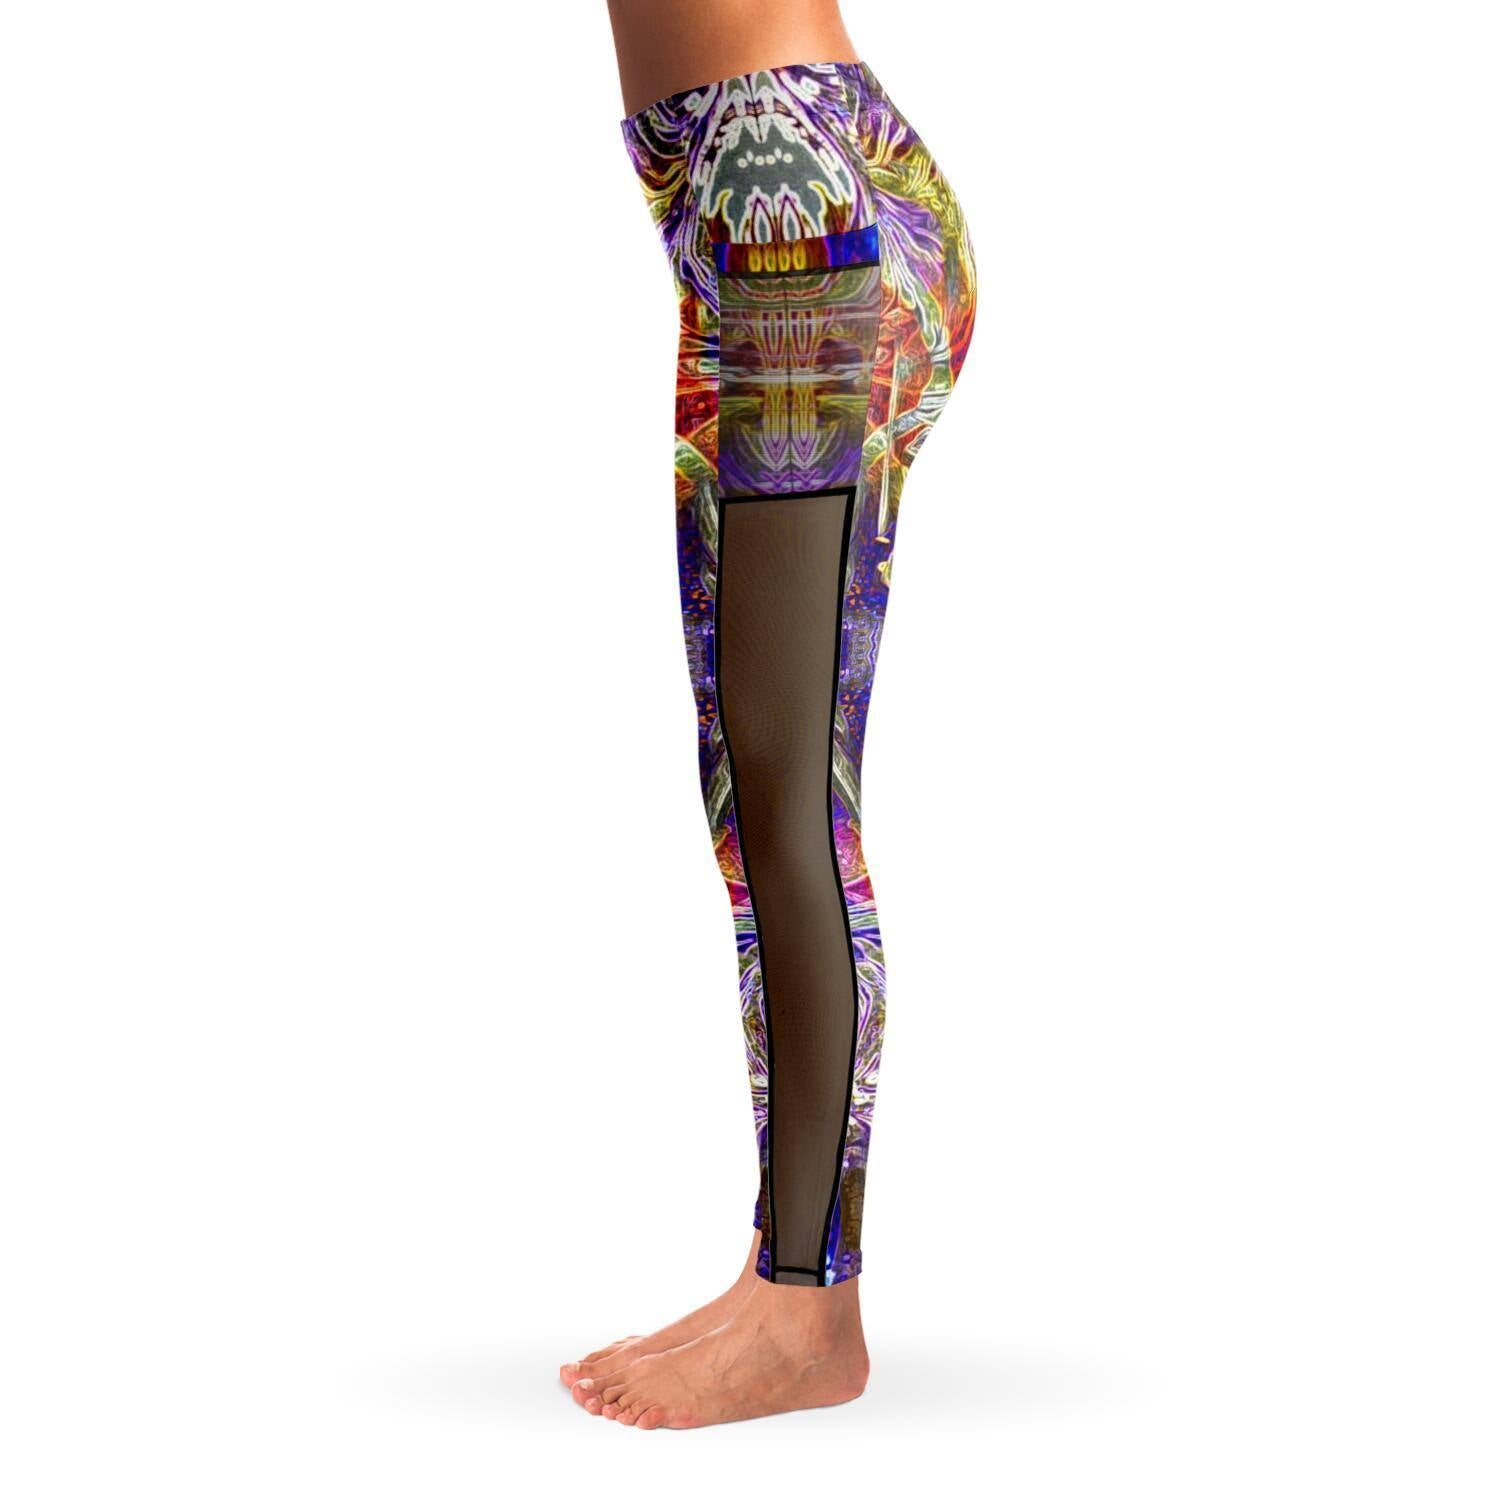 NIRVANA BLISS PREMIUM MESH POCKET YOGA LEGGINGS